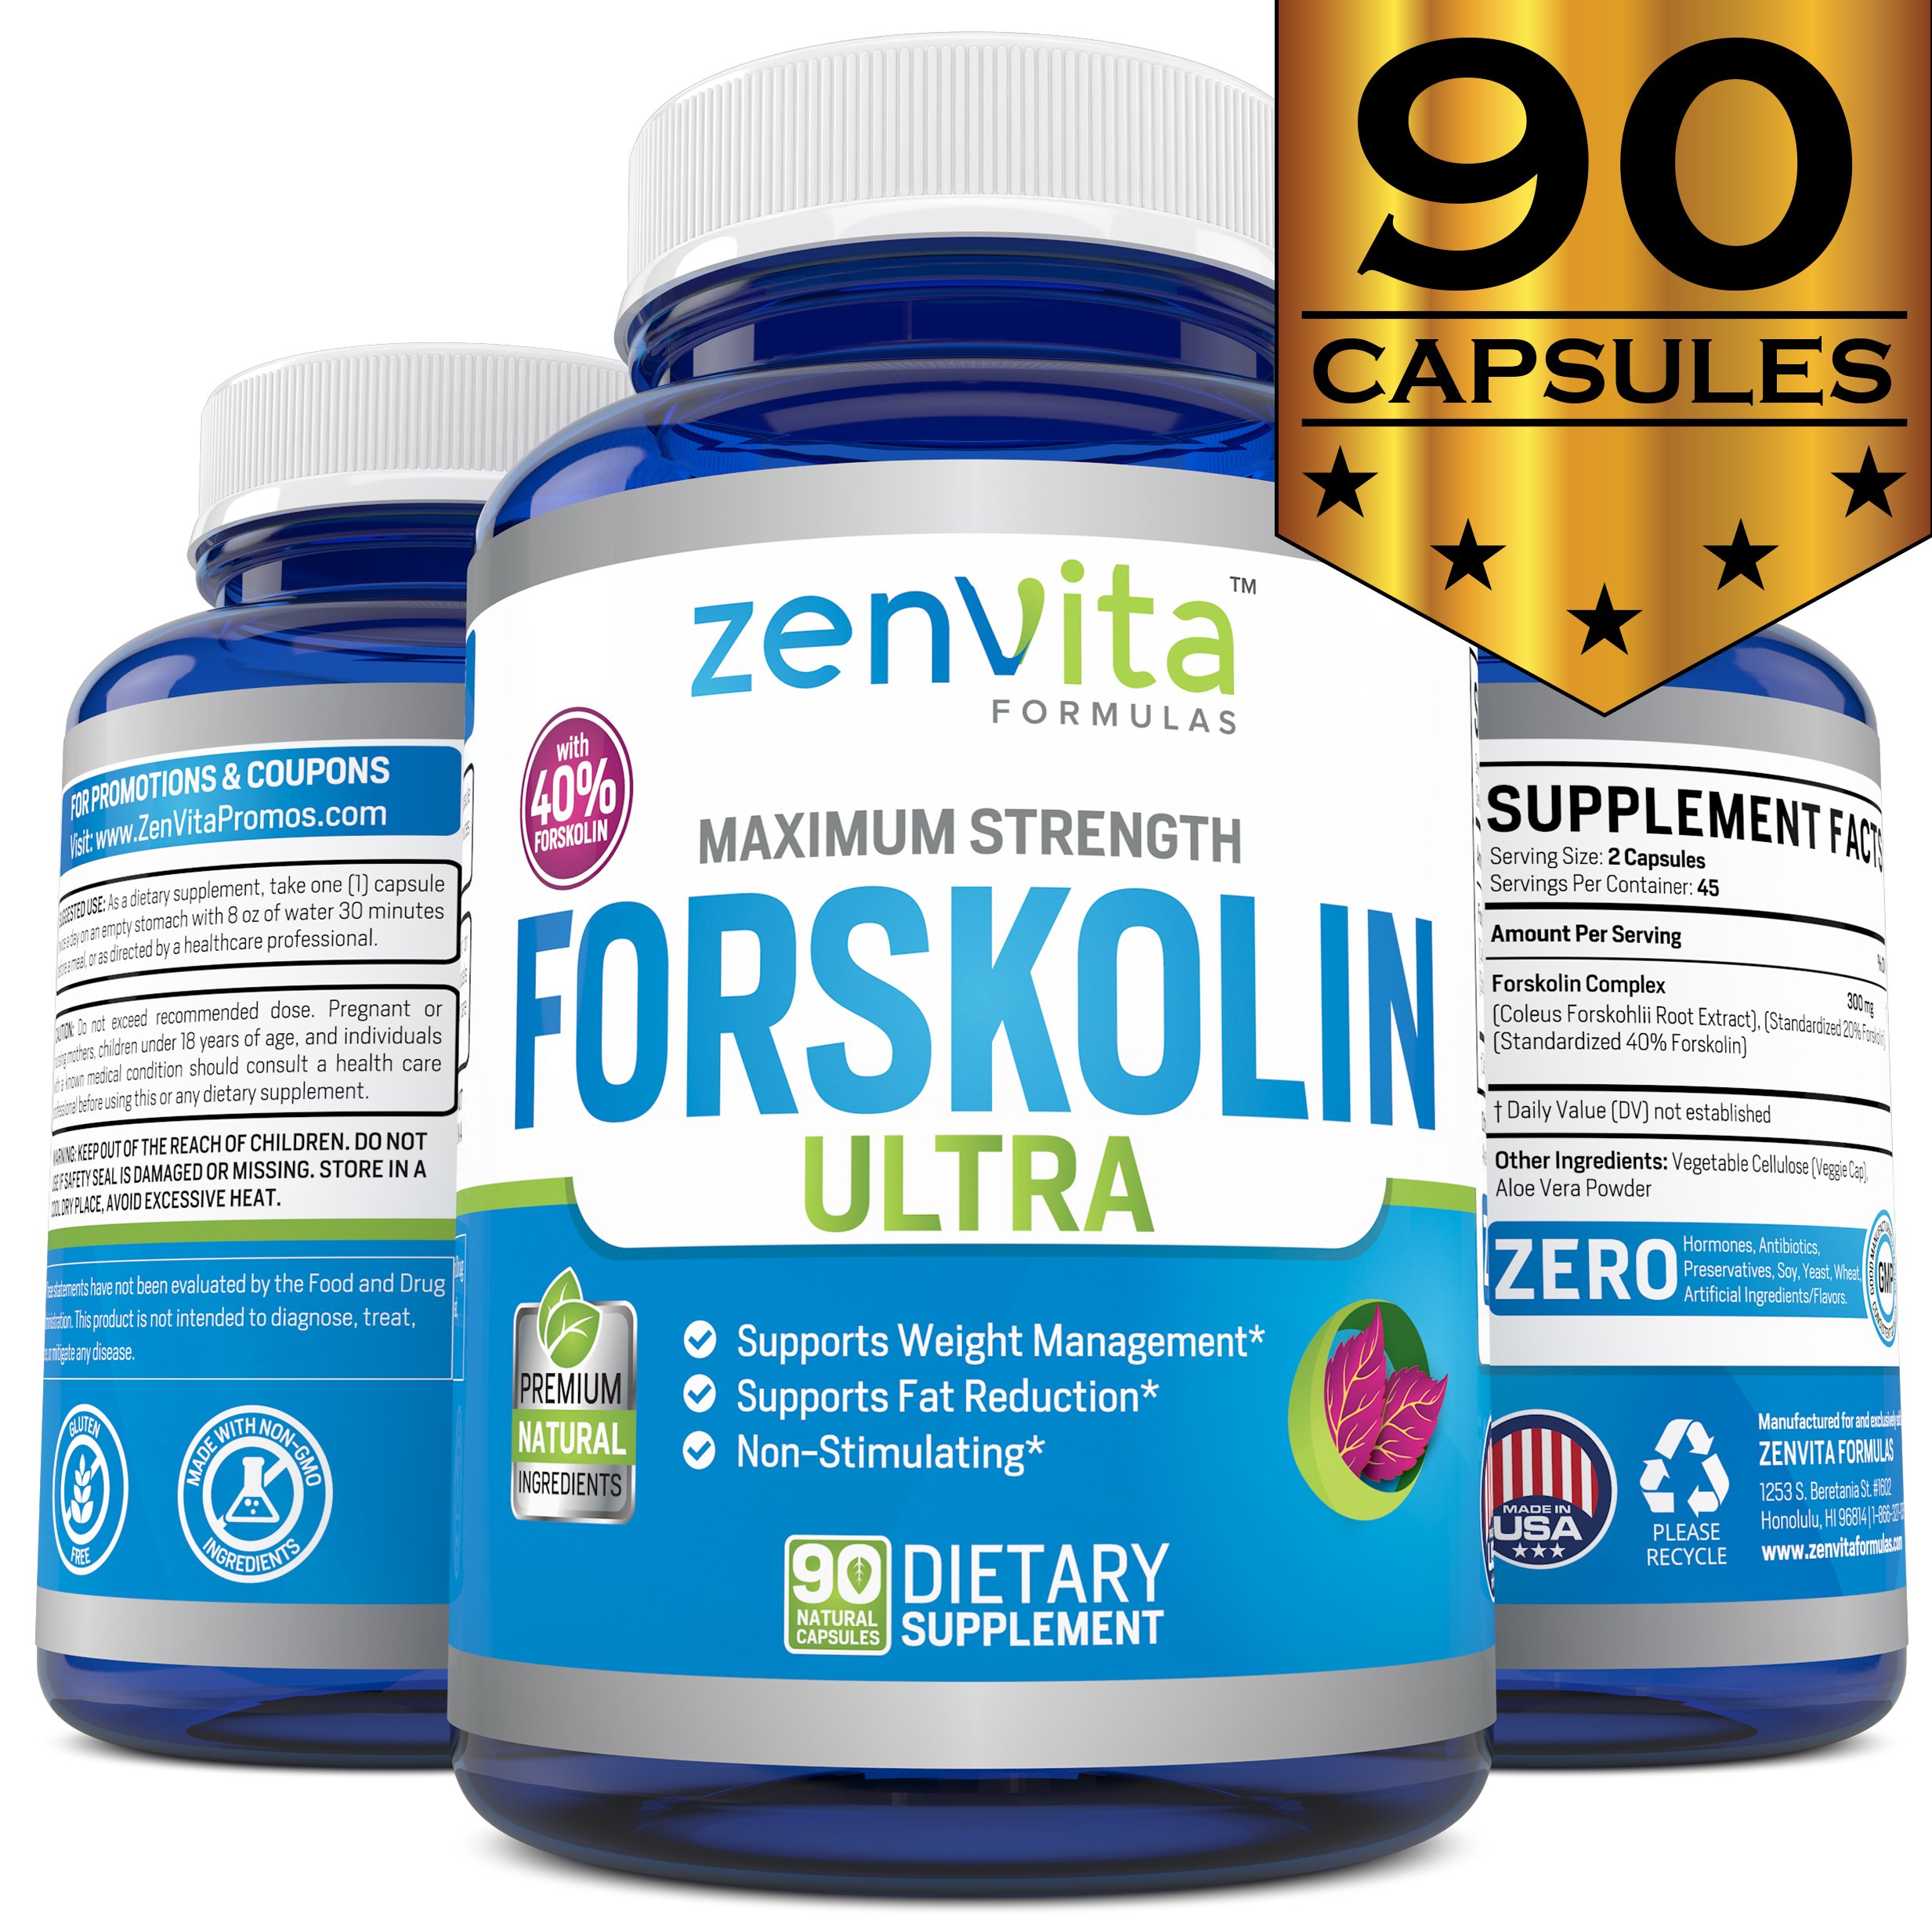 100% Pure Forskolin Extract 600mg - w/ 40% Standardized Forskolin for Weight Loss | Effective Appetite Suppressant, Carb Blocker & Max Strength Weight Loss Pills for Women & Men | 90 Capsules by ZenVita Formulas